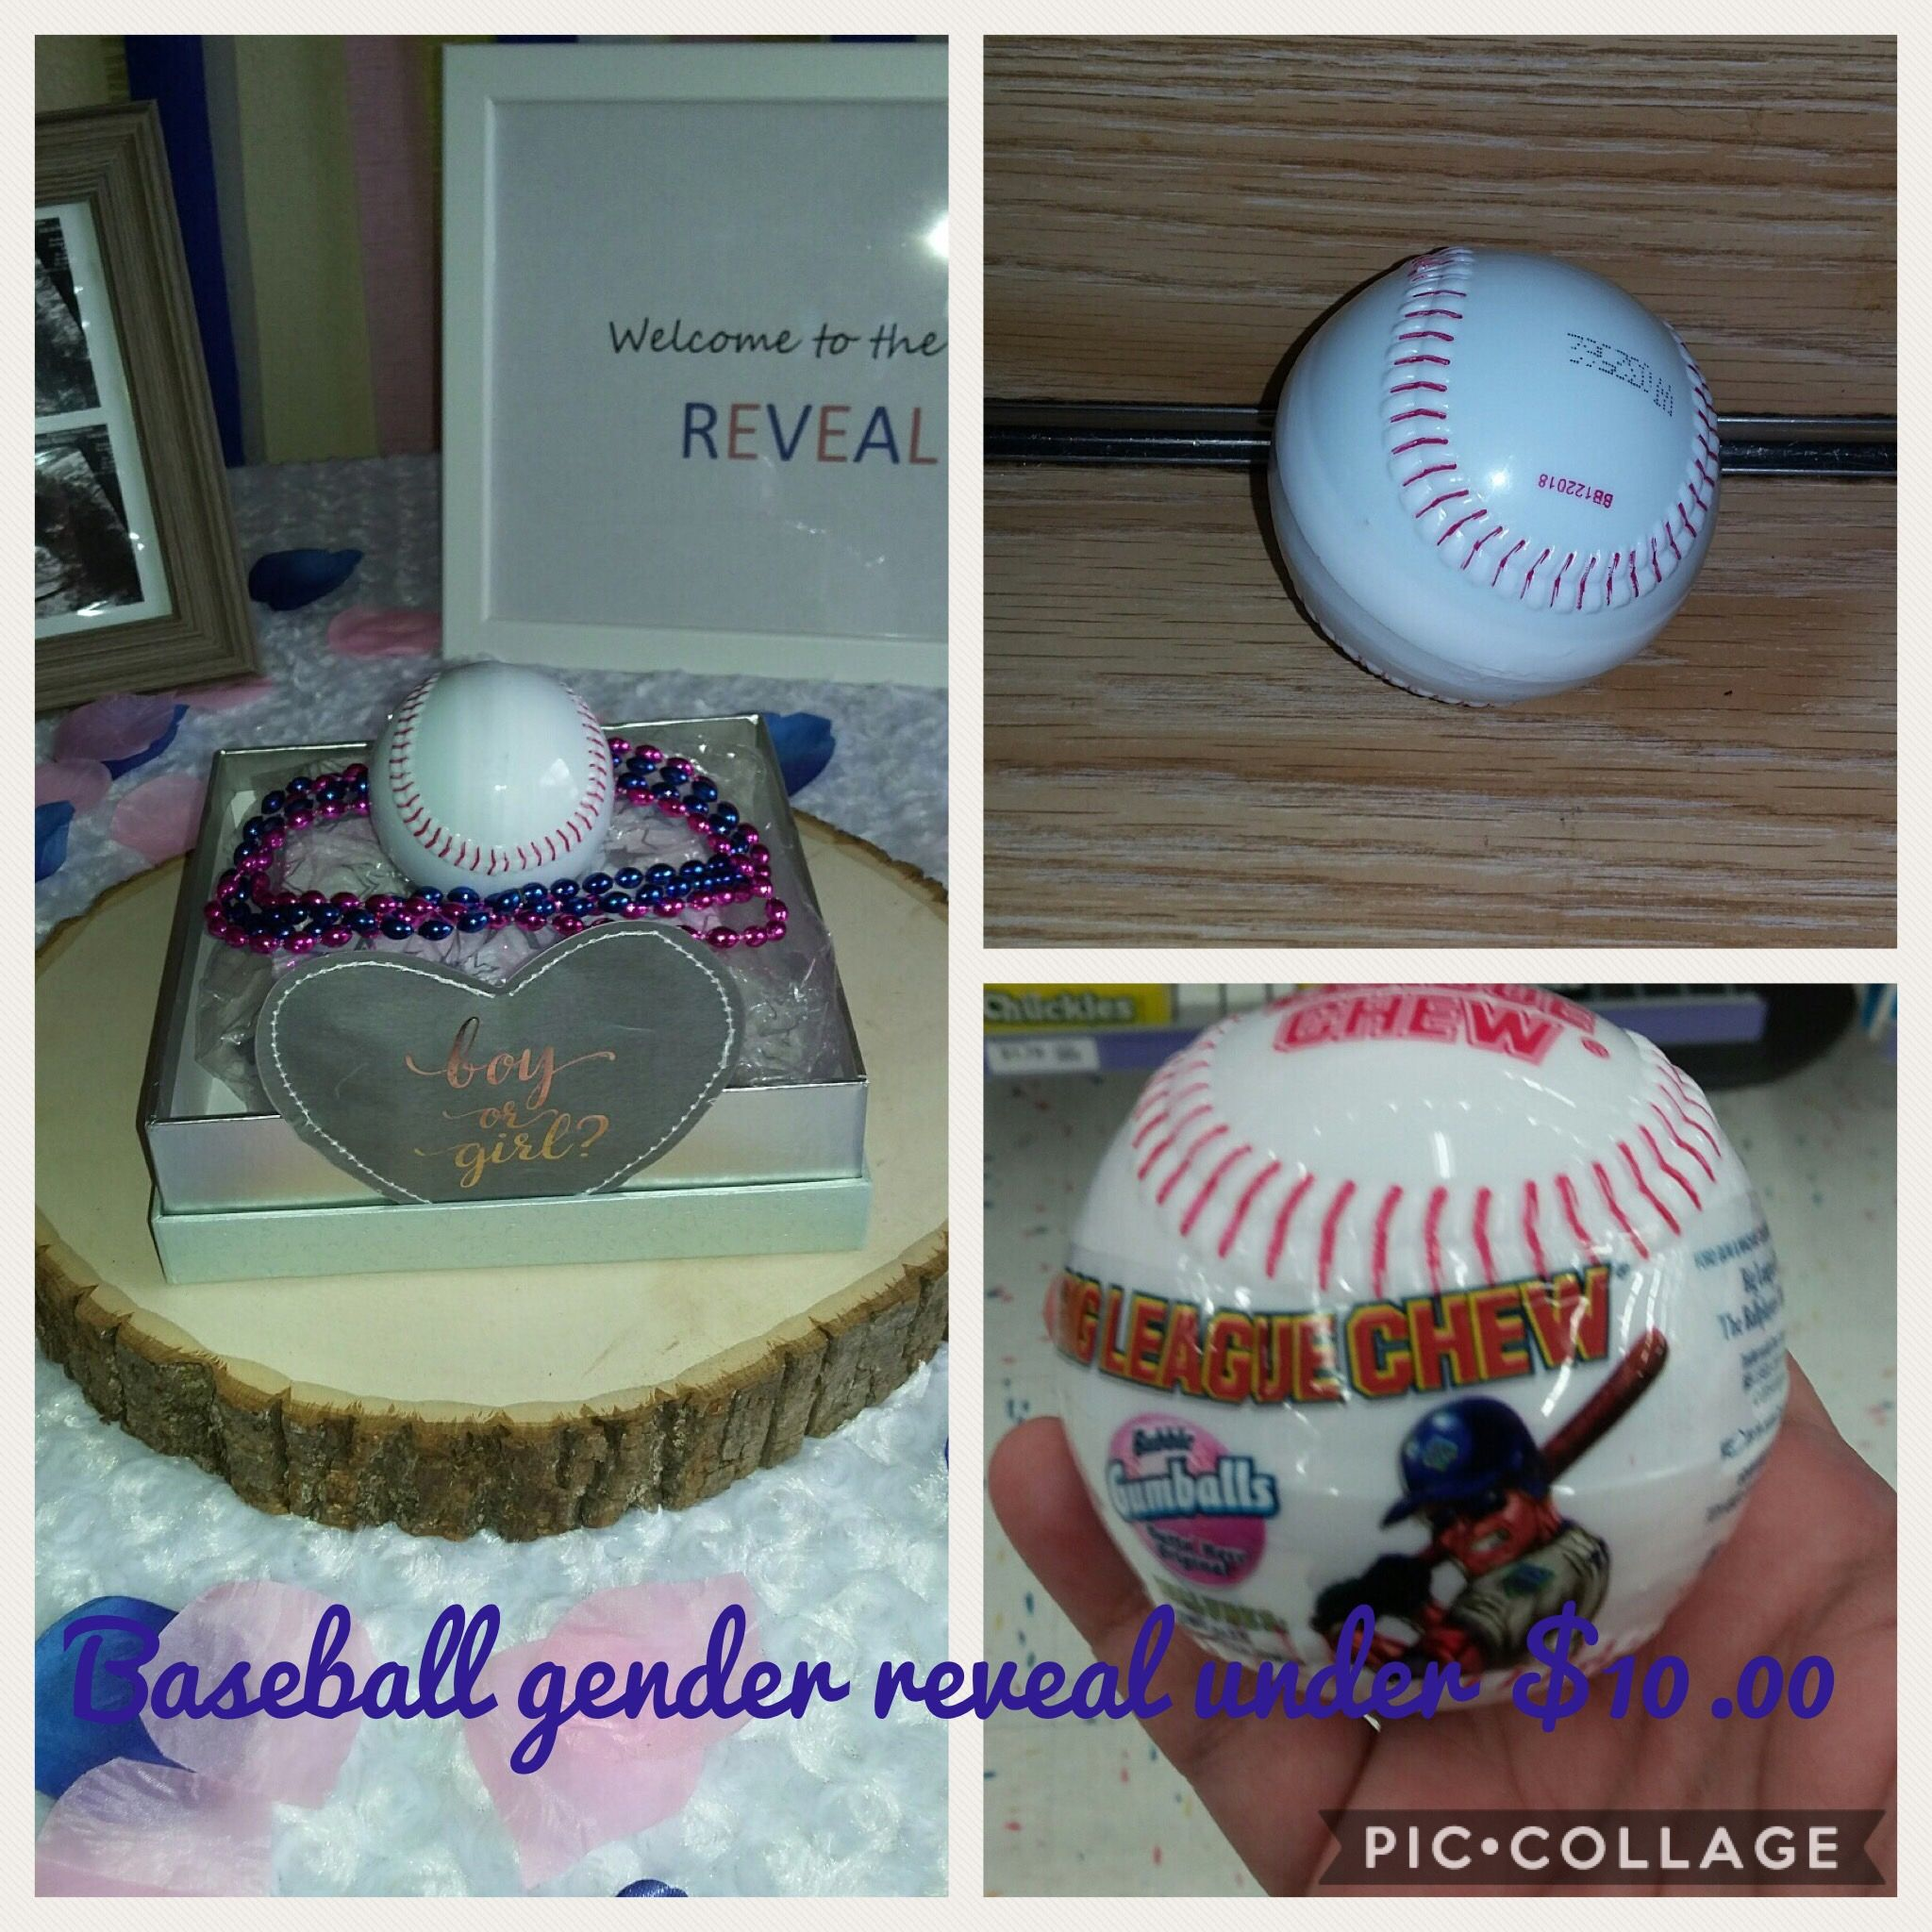 Diy Baseball Gender Reveal Under 10 00 I Bought The Baseball In The Candy Section At Party City F Baseball Gender Reveal Gender Reveal Party Reveal Parties